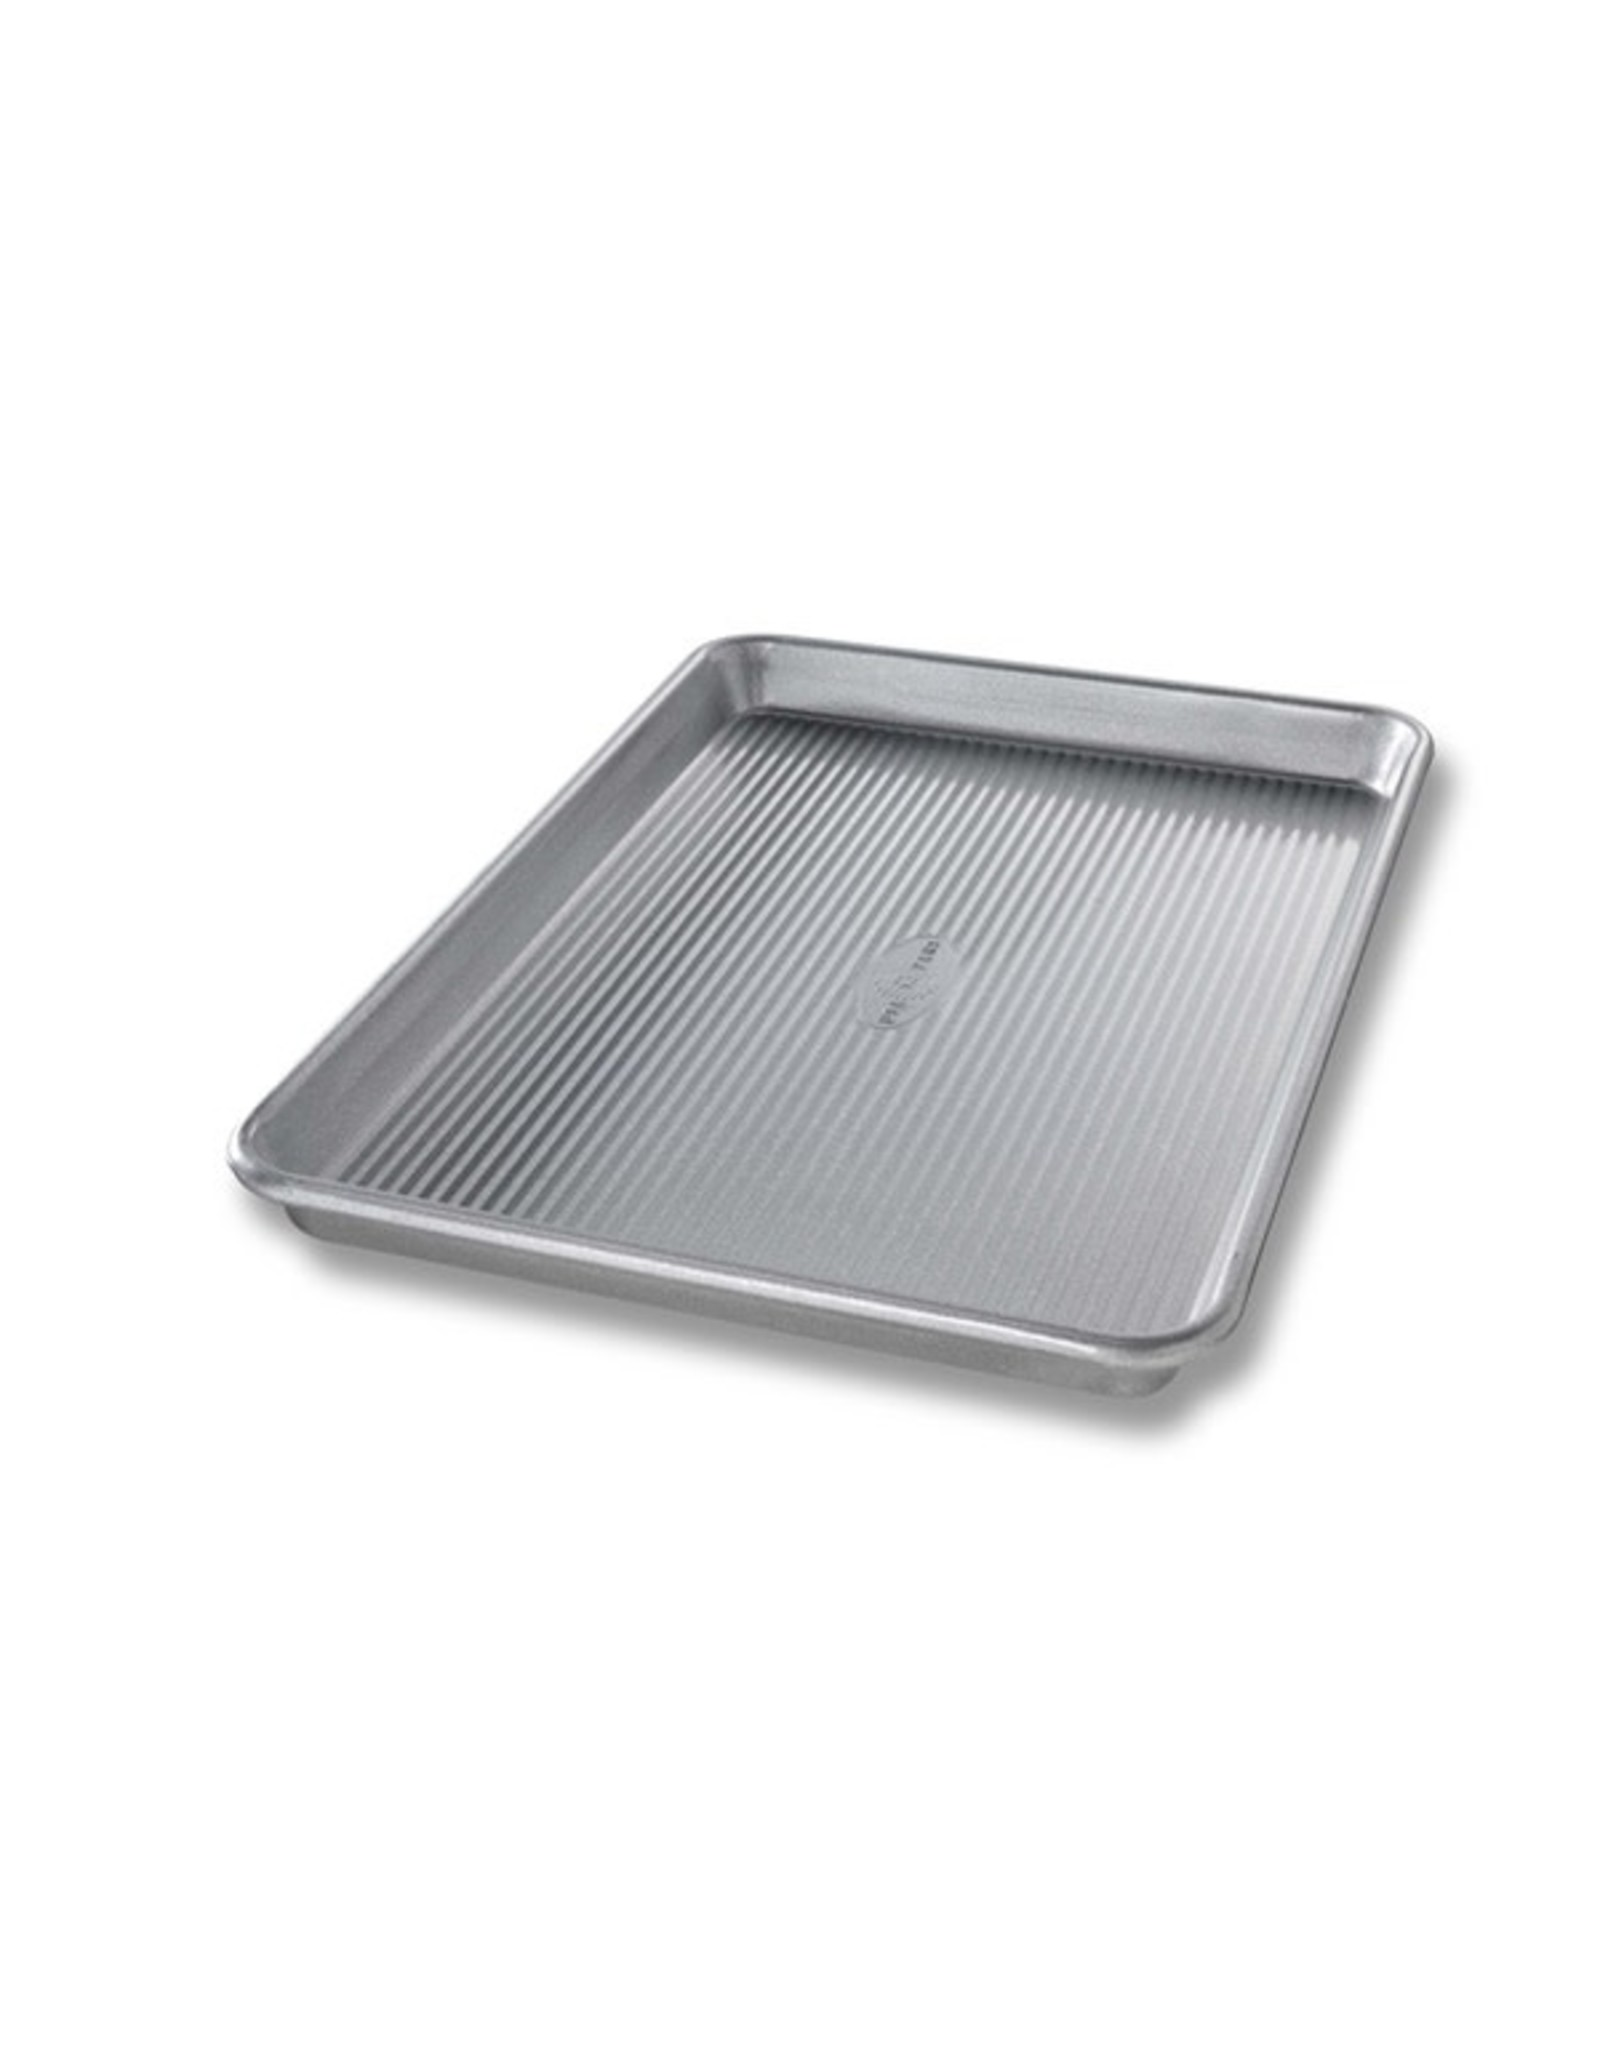 USA Pan 1/4 Sheet Baking Pan, 9x12.5